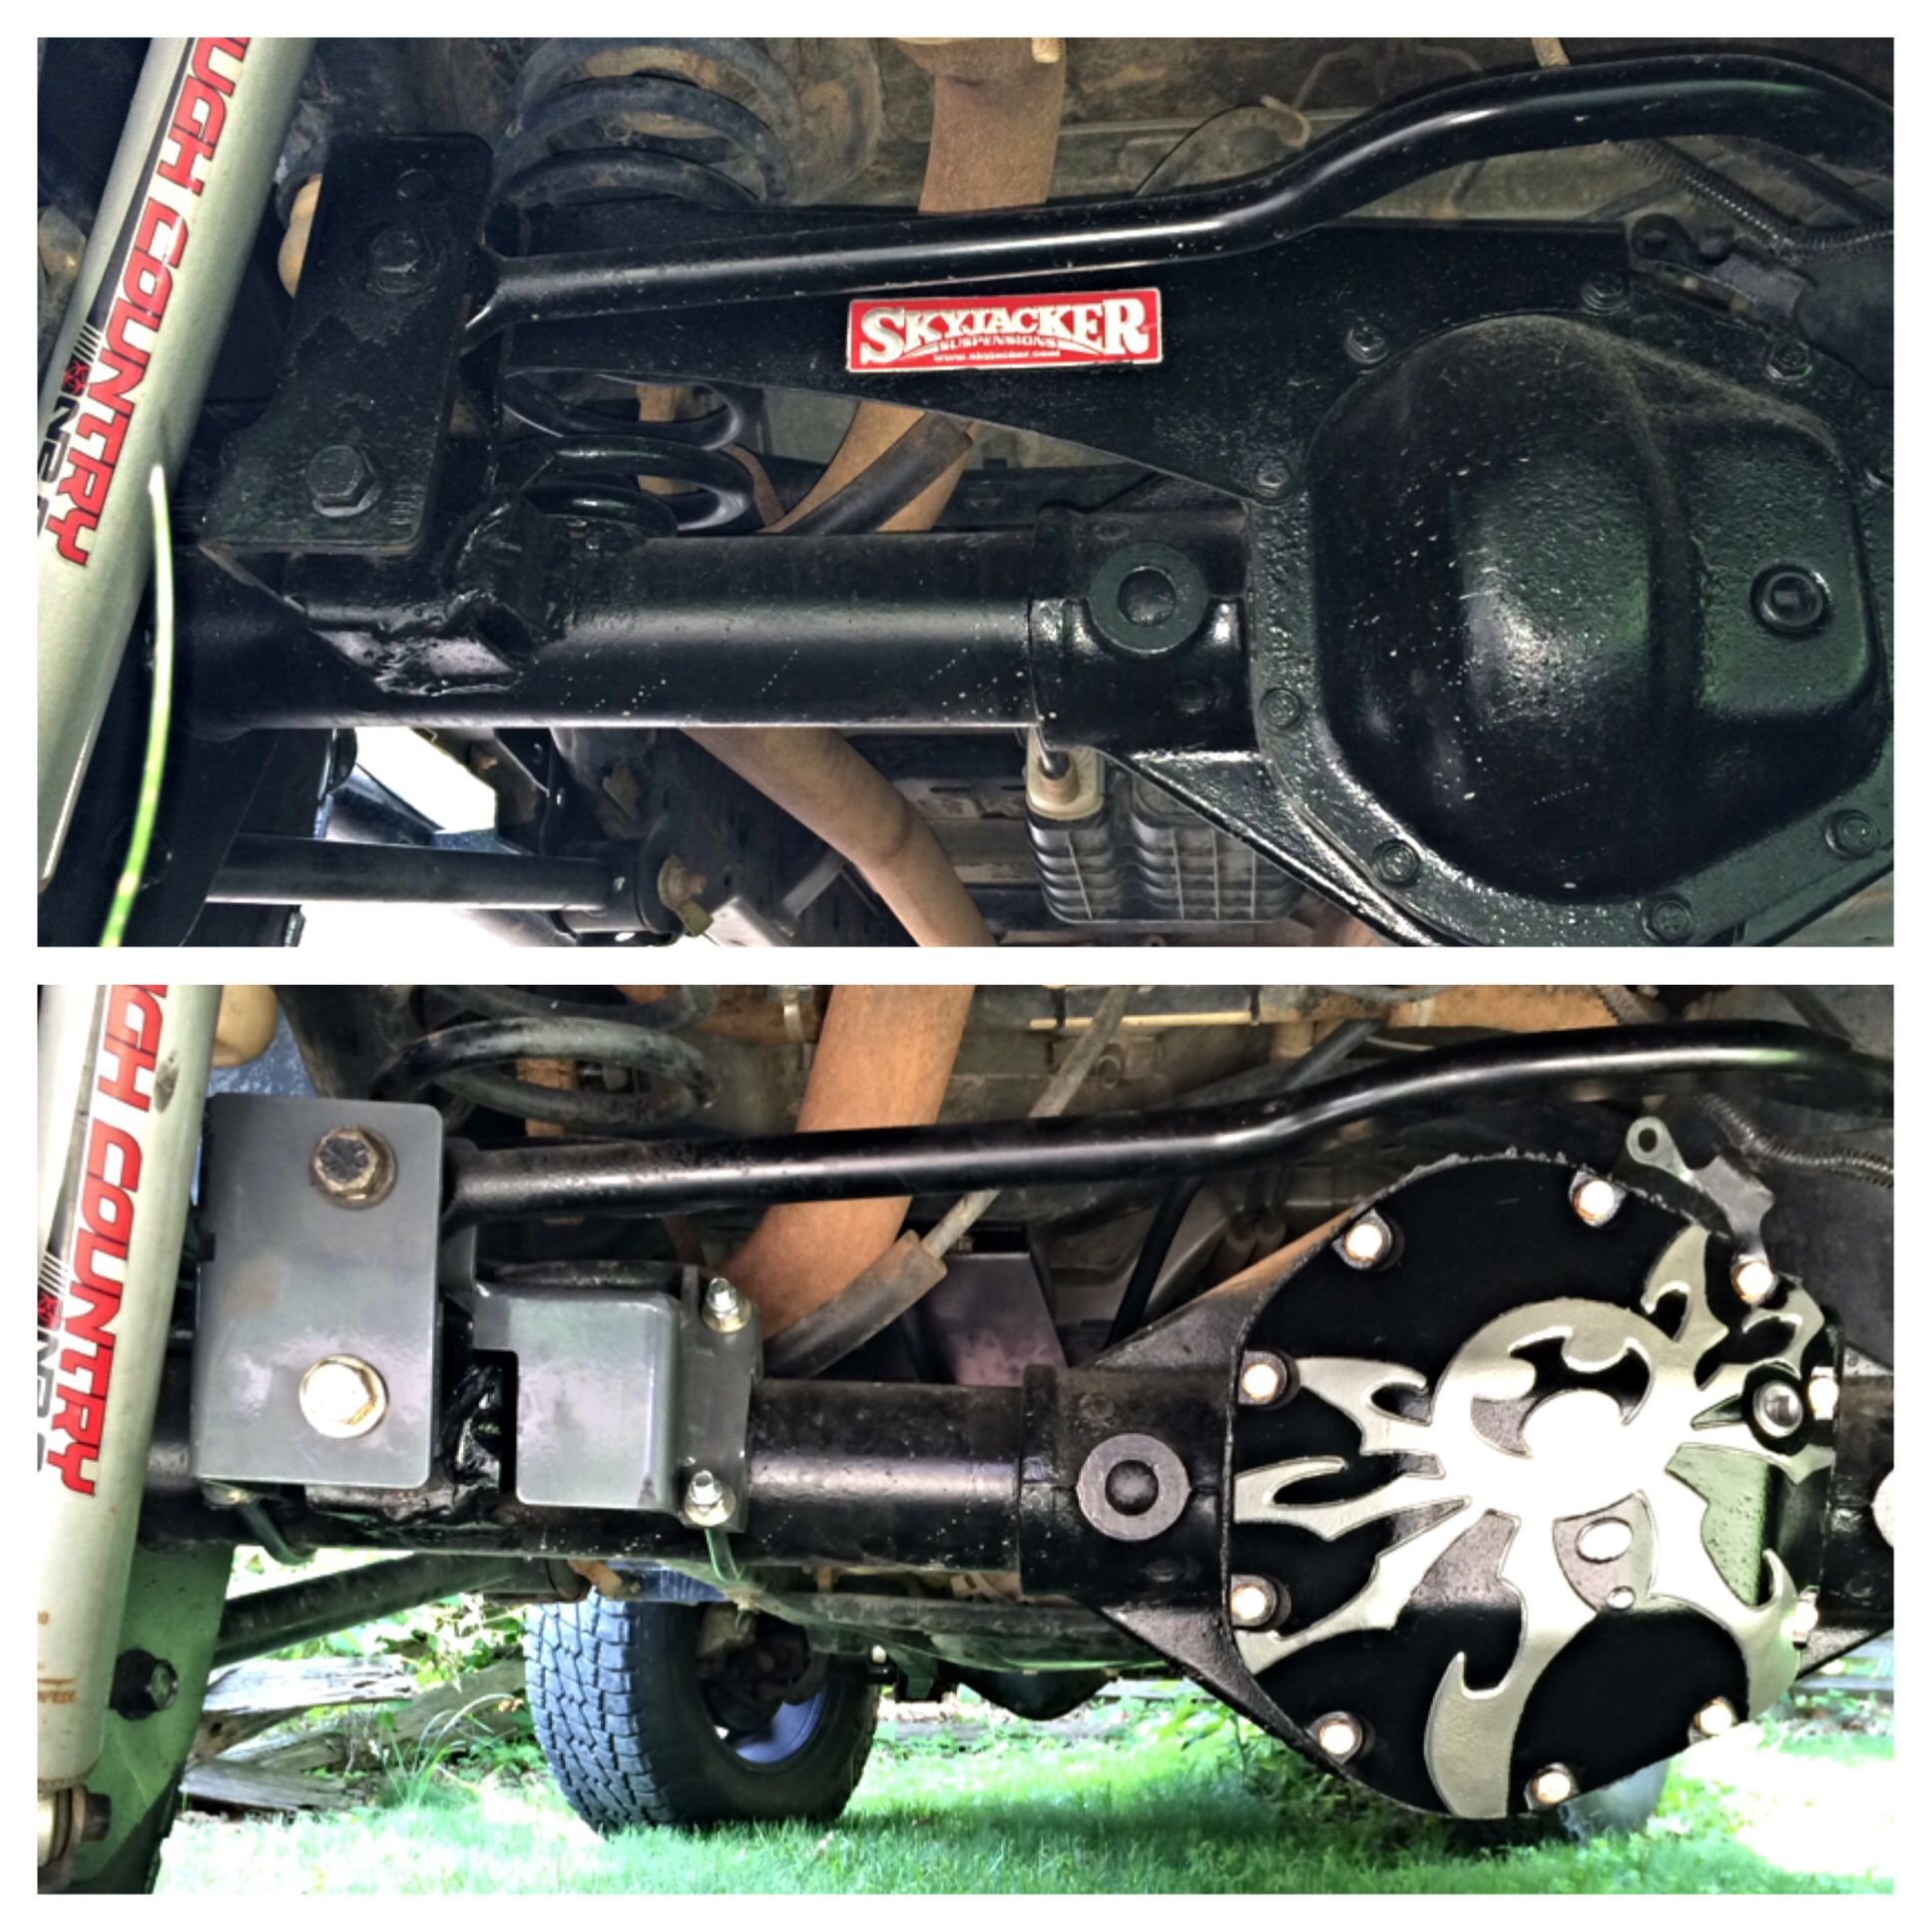 June 2014 Replaced Some Of The Old Skyjacker Parts With The New Synergy Track Bar Bracket And Then In 2008 Jeep Wrangler Outdoor Power Equipment Jeep Wrangler